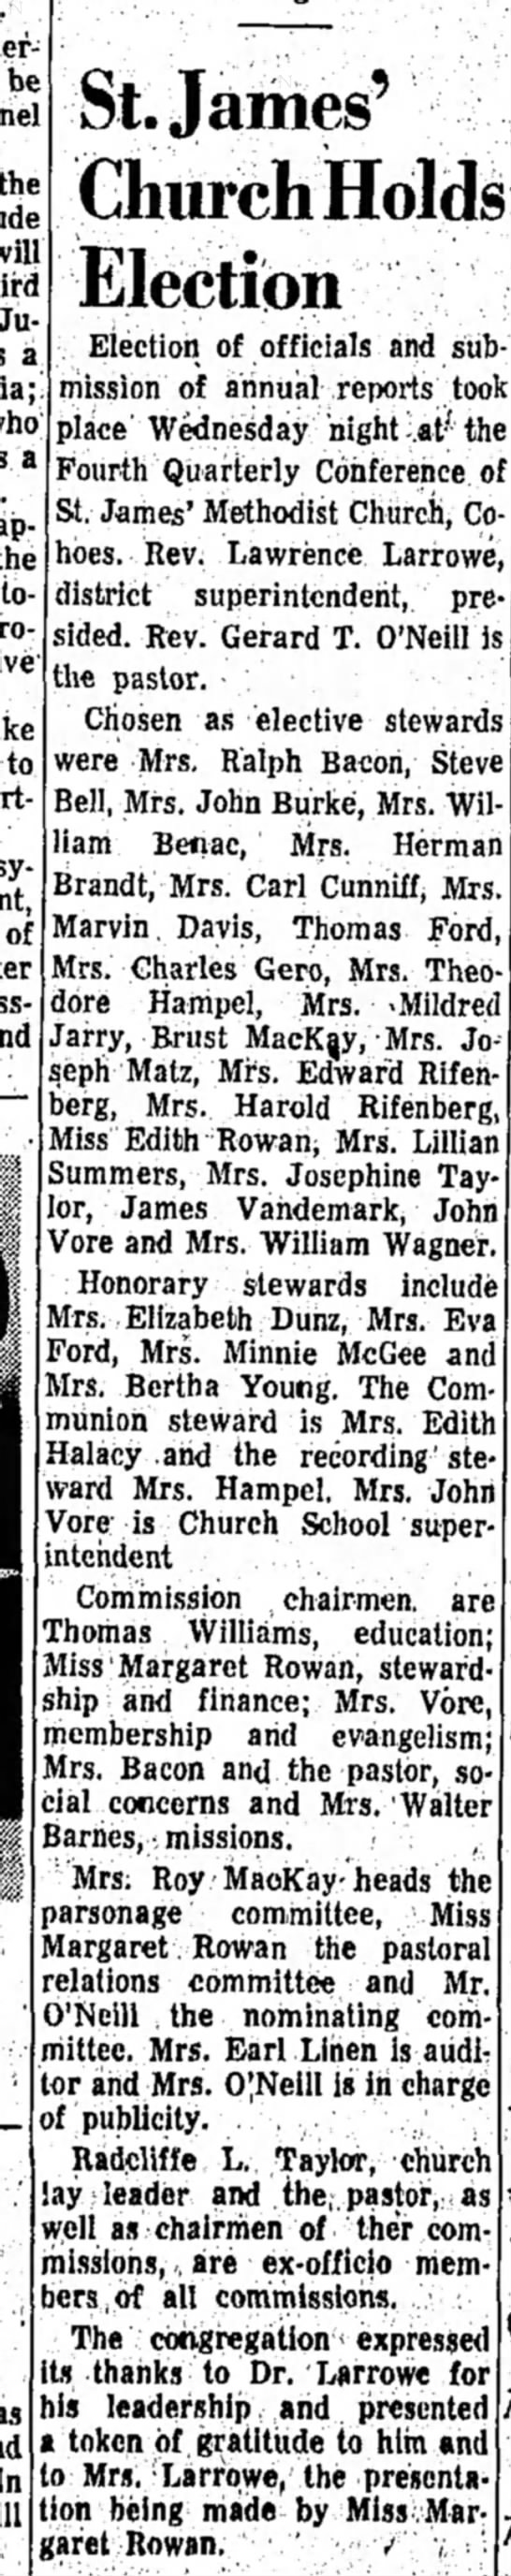 Hampel Theodore Thomas b1902 1967 Newspaper - be will .Judith a a ap- In St. James' Church...